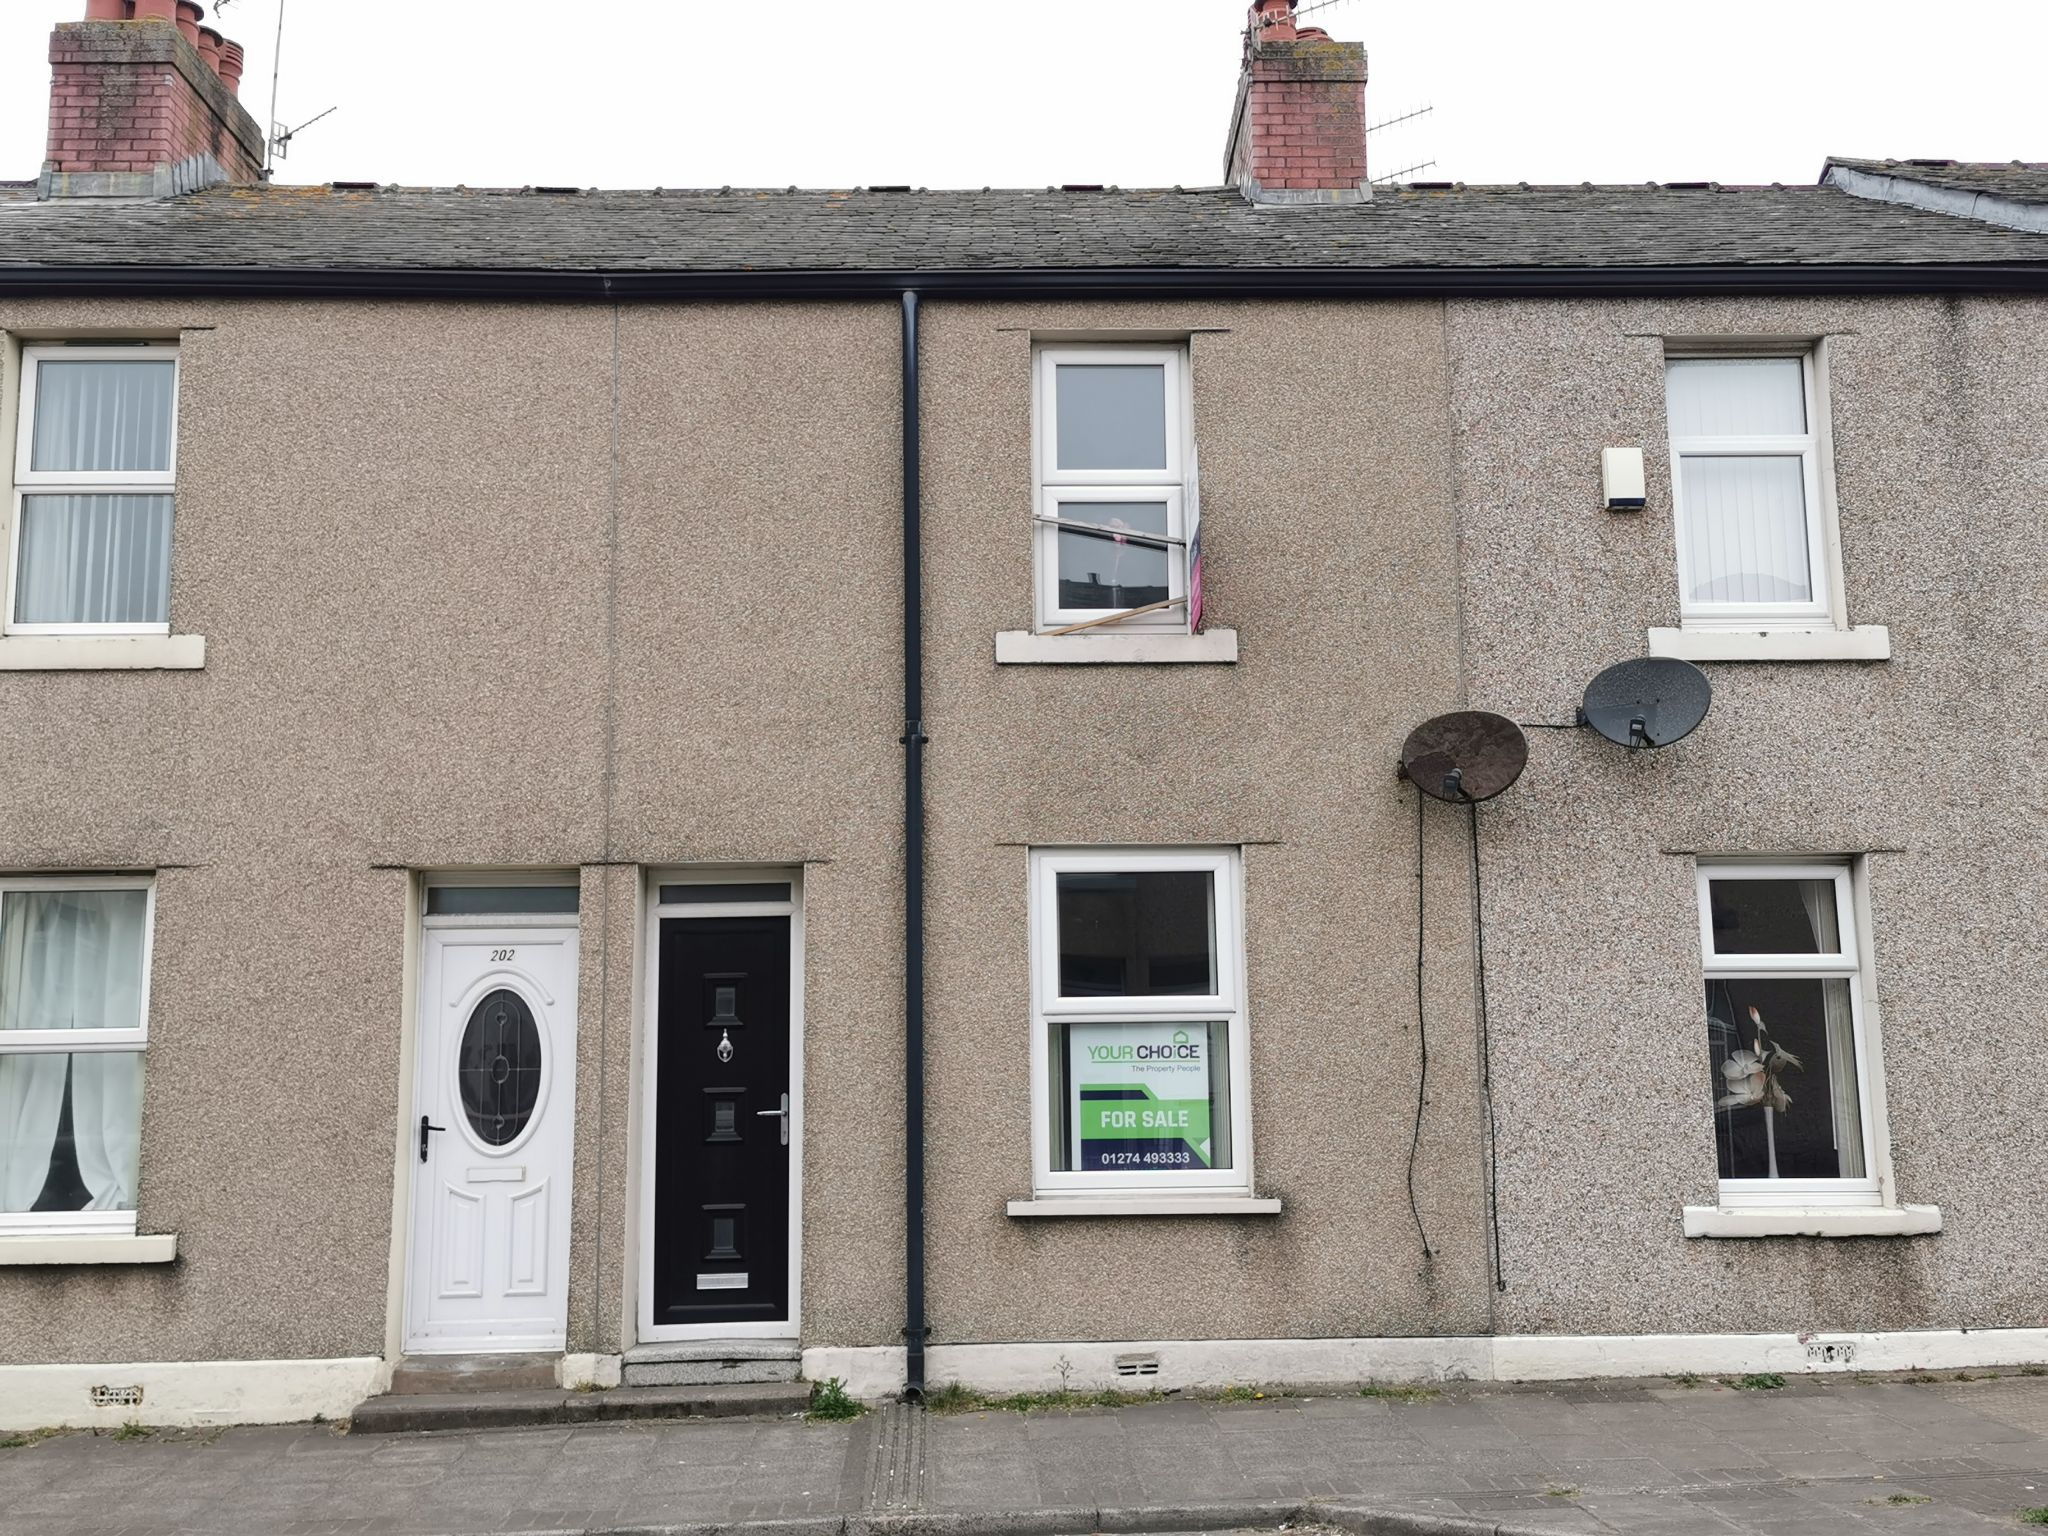 2 bedroom mid terraced house For Sale in Allerdale - Photograph 1.